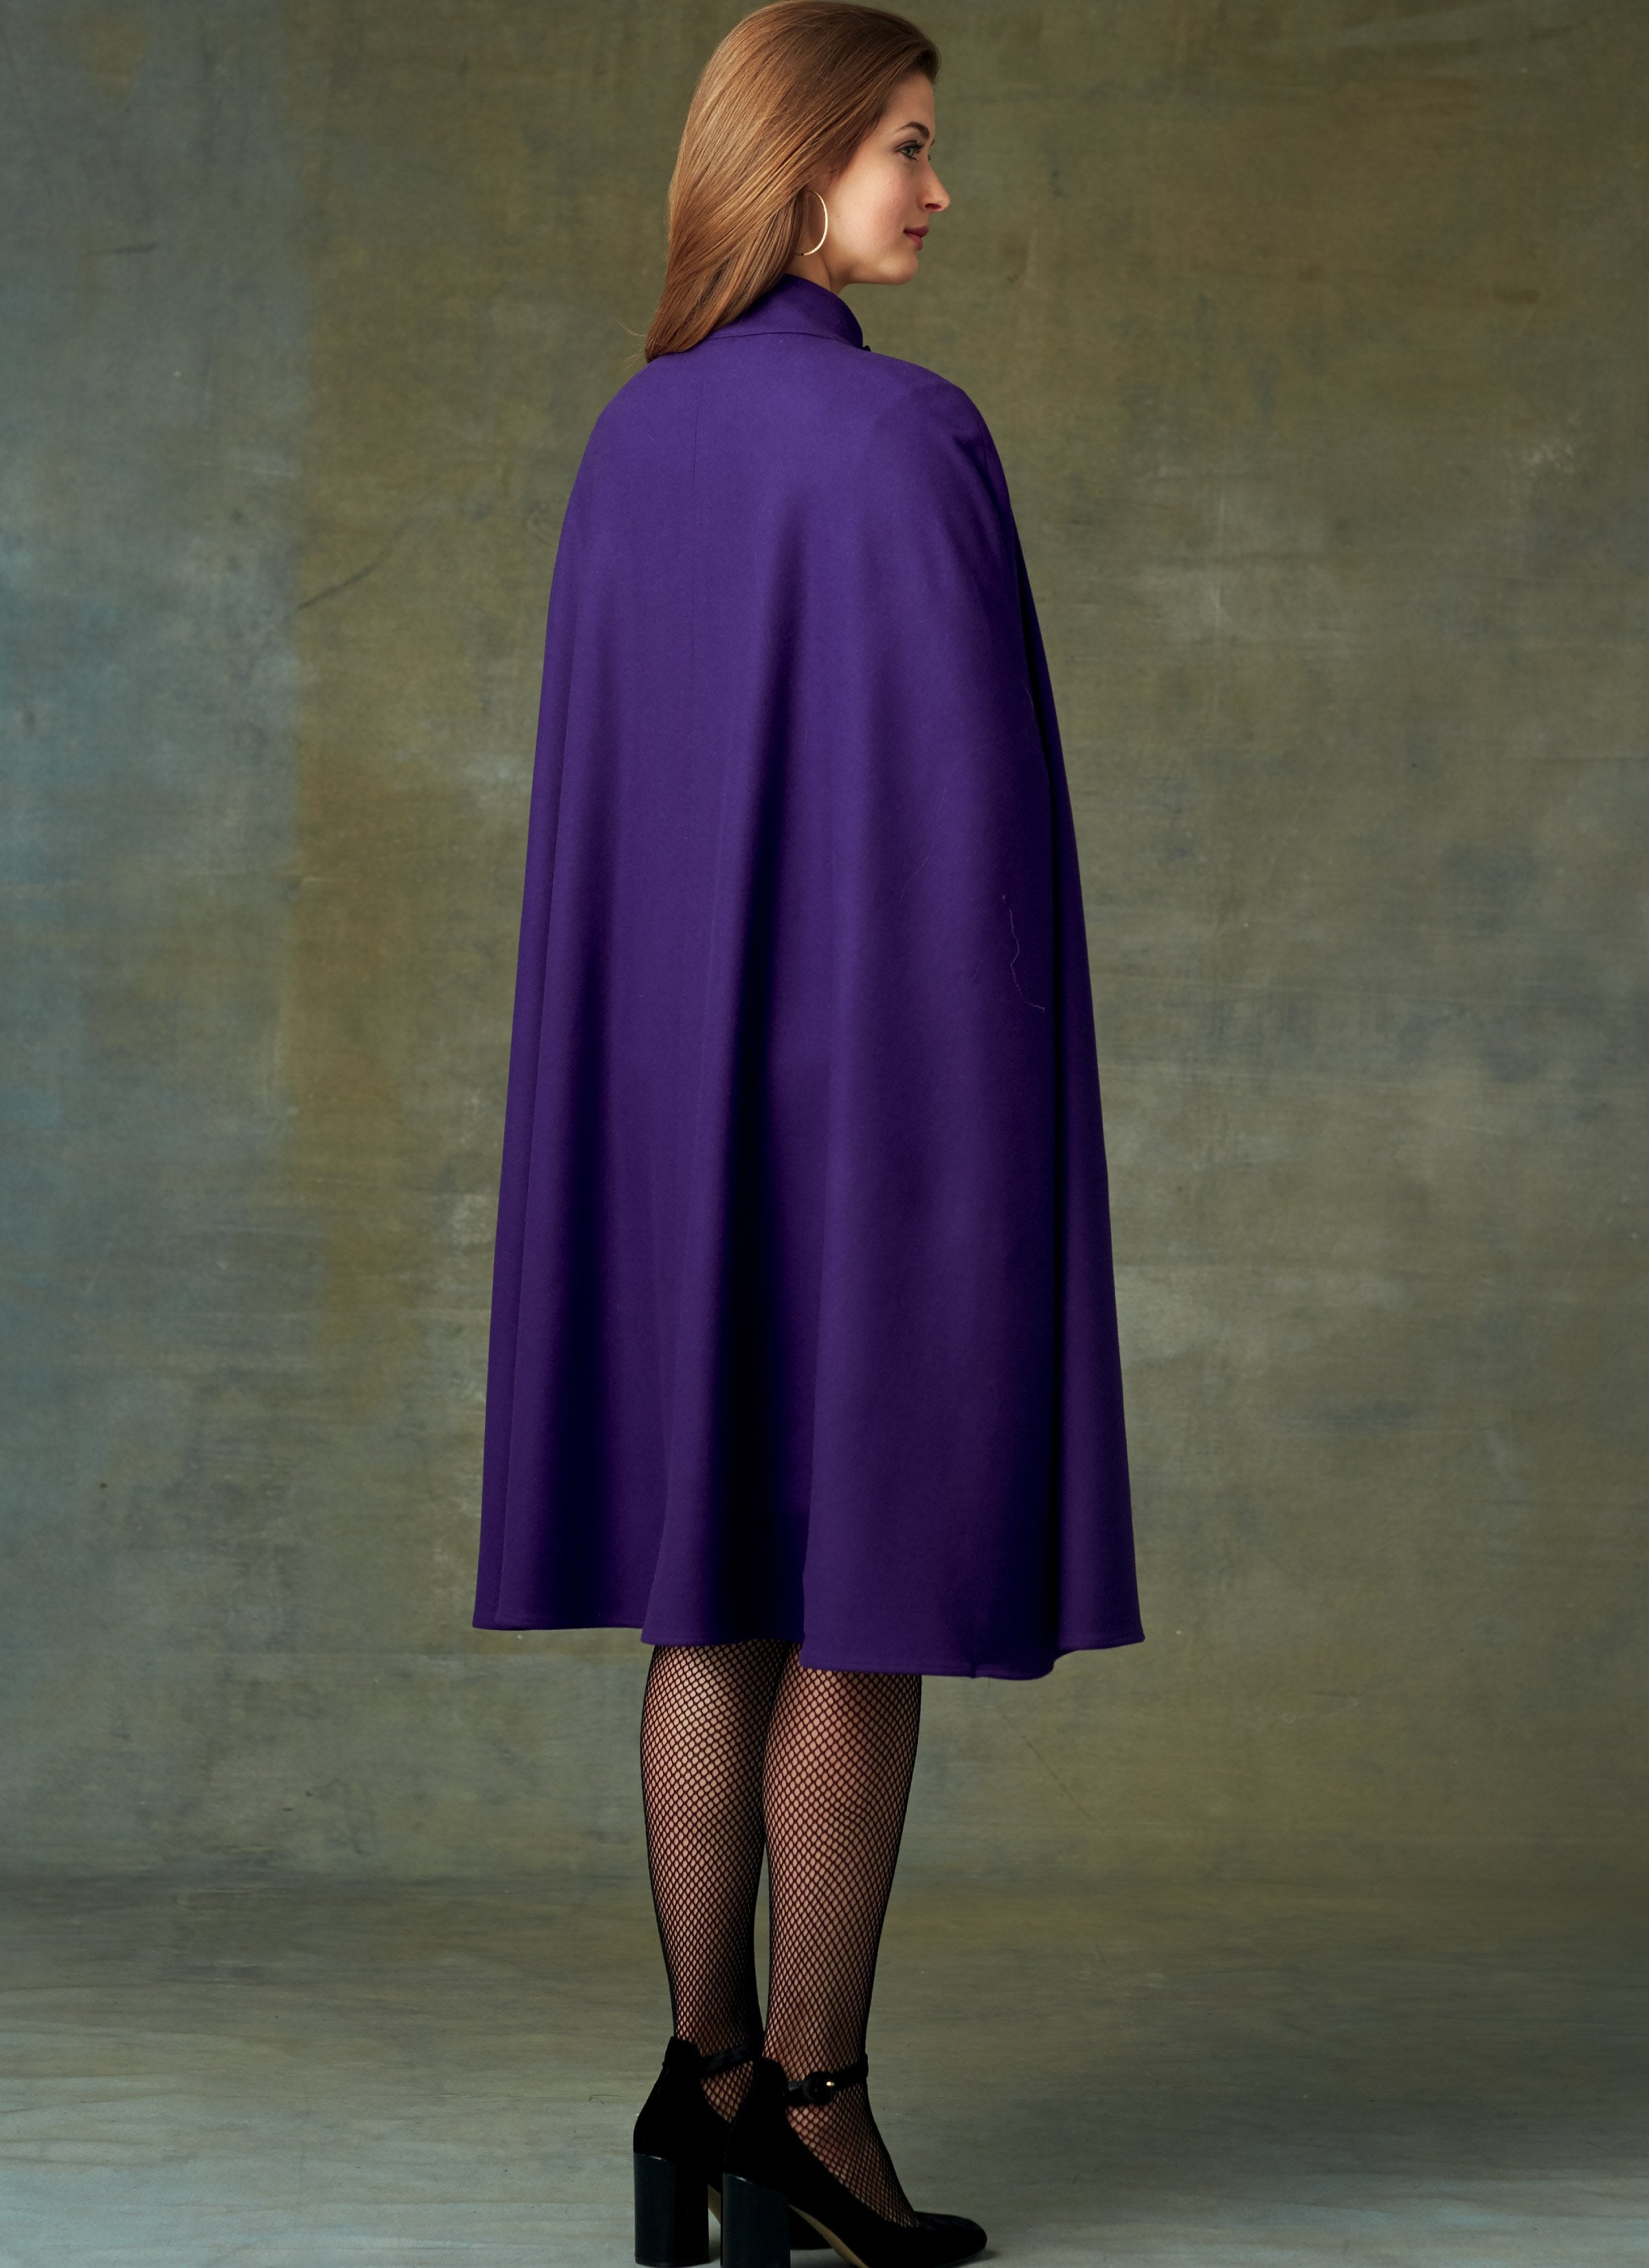 V9288 Cape with Stand Collar, Pockets, and Belt